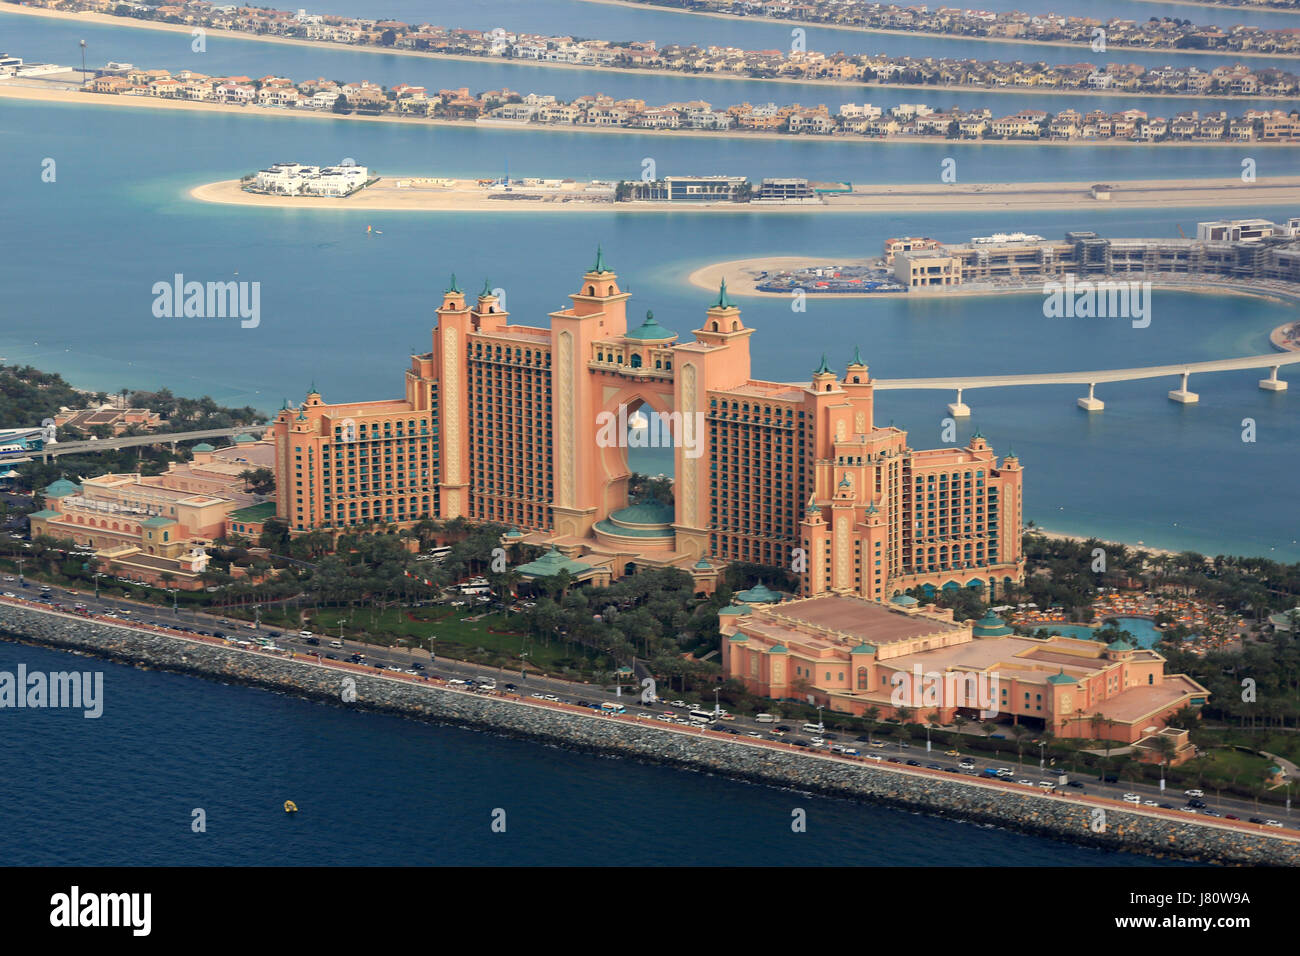 Atlantis Palm Hotel Dubai Stock Photos Atlantis Palm Hotel Dubai